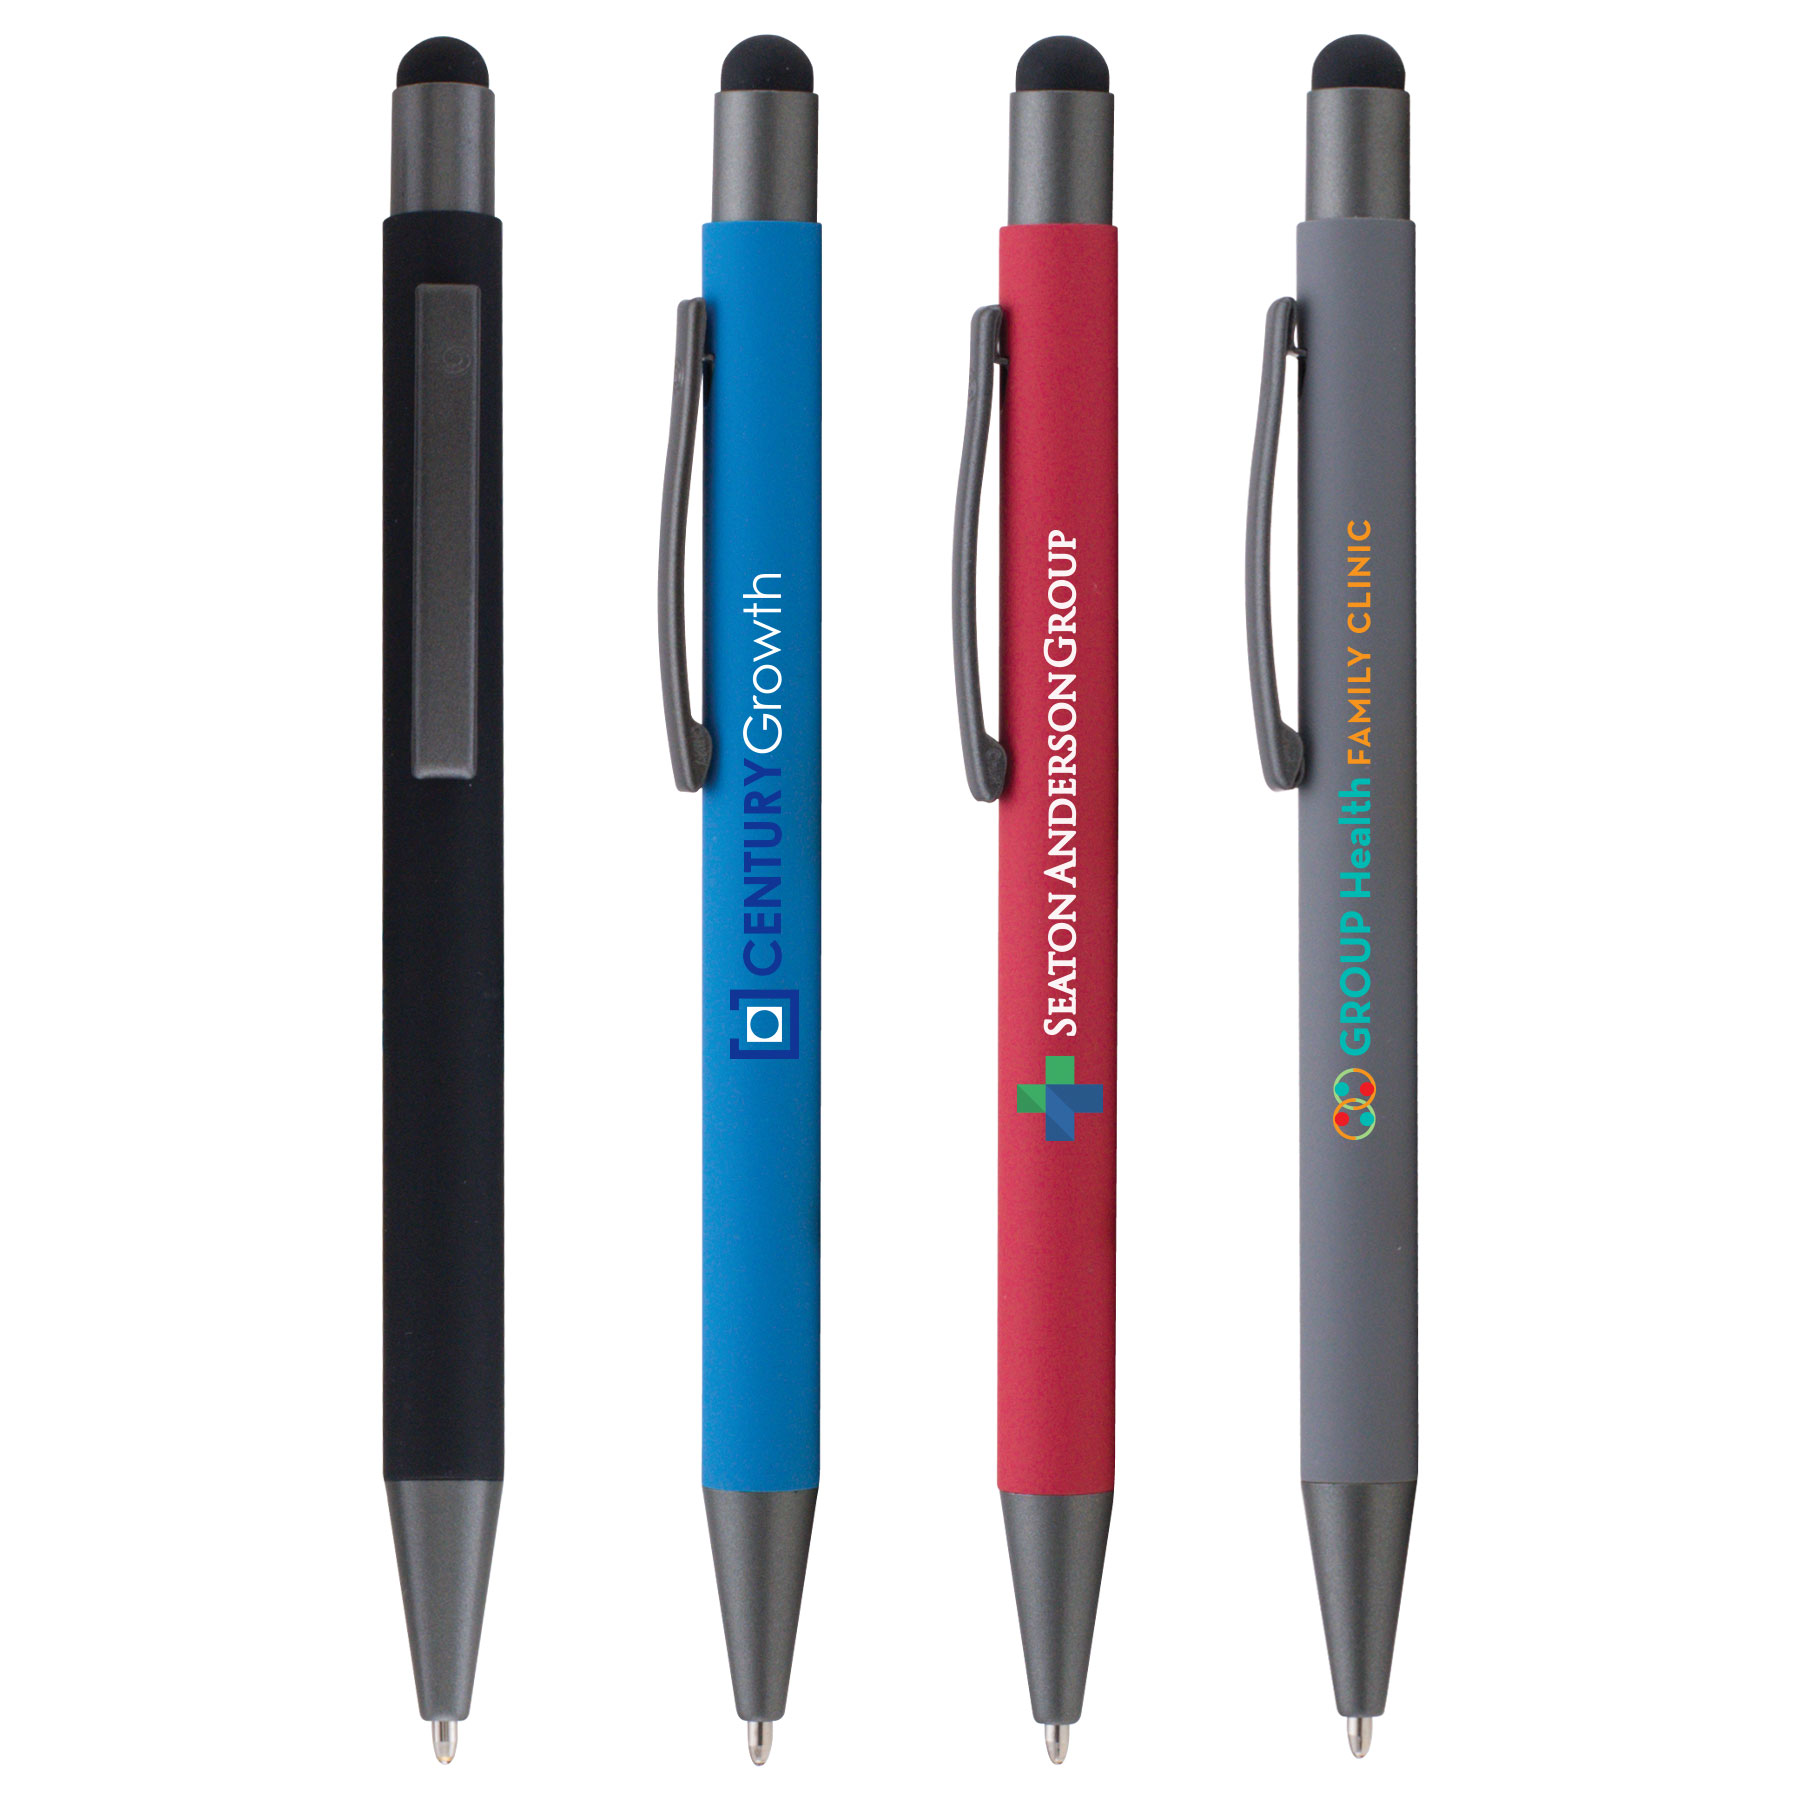 (MHX) Bowie Softy with Stylus – ColorJet